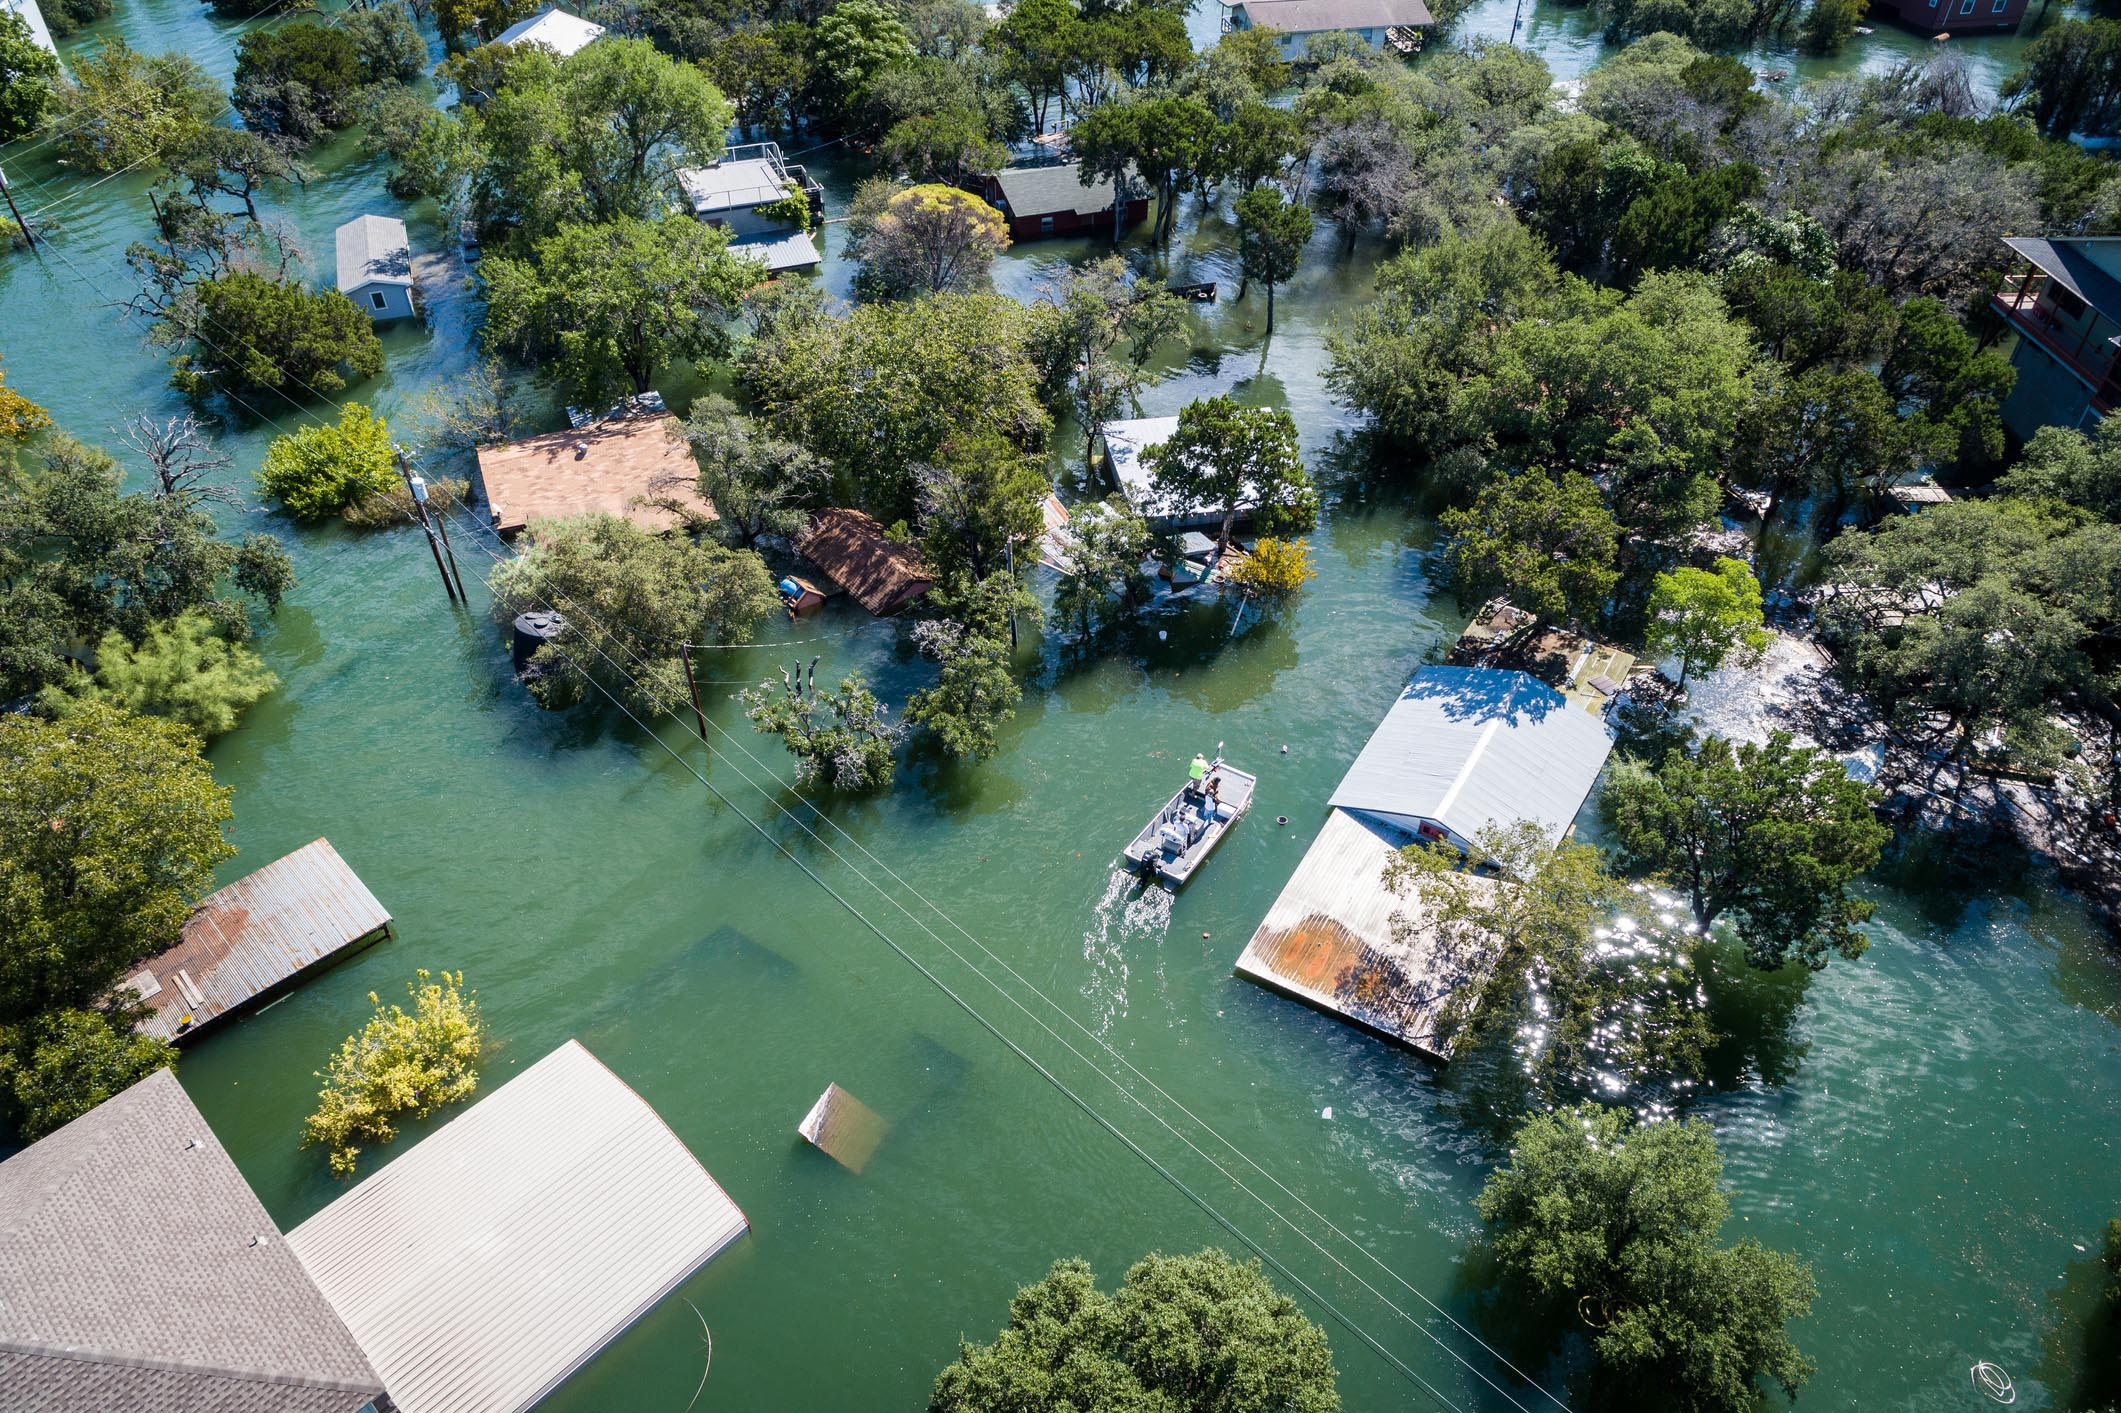 A water rescue crew searches for survivors in Texas after Hurricane Harvey, a devastating Category 4 hurricane that made landfall on Texas and Louisiana in August 2017, causing catastrophic flooding.